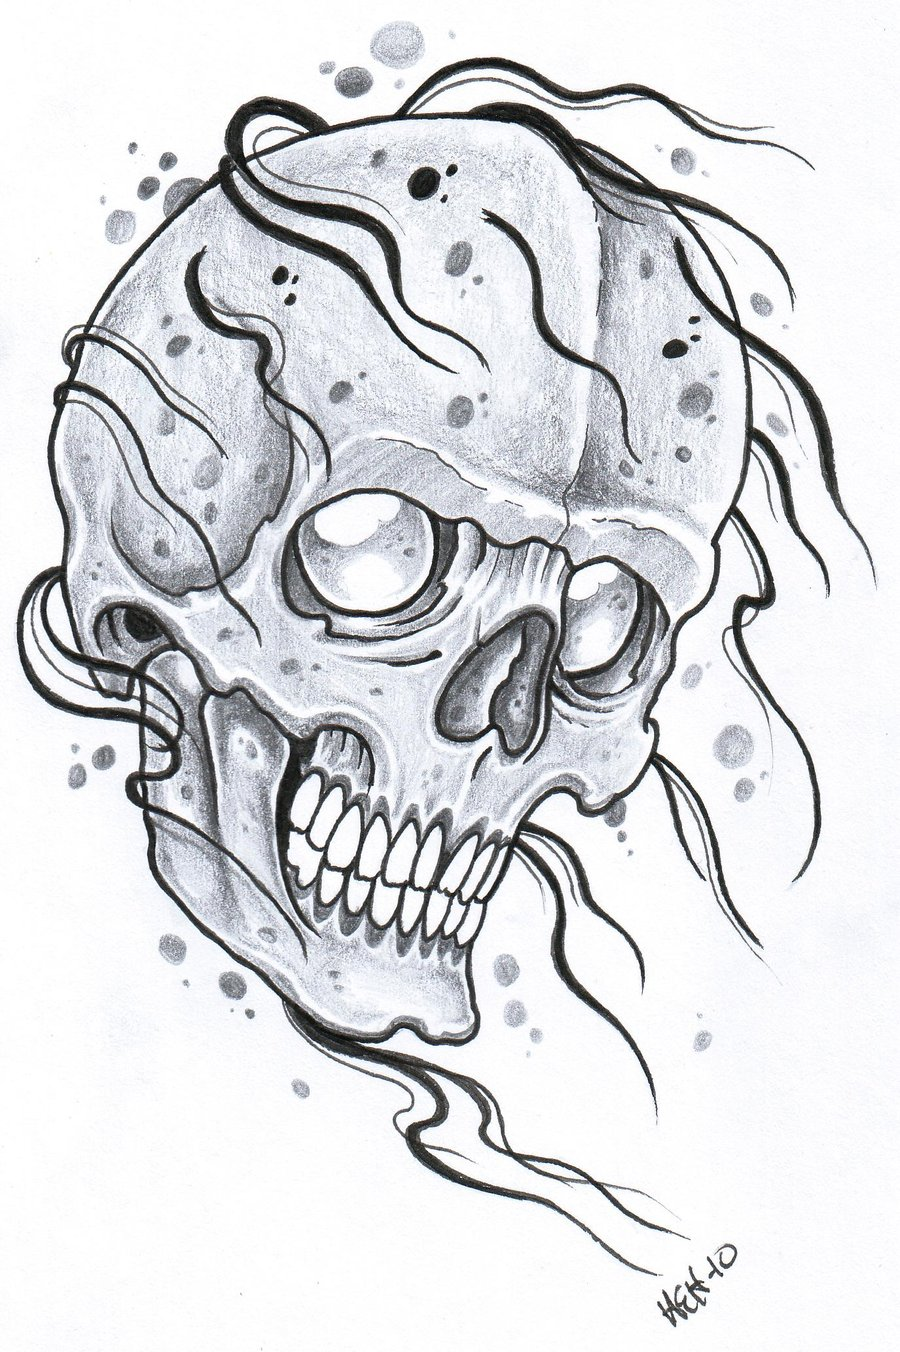 Engrave Skull Tattoo Design